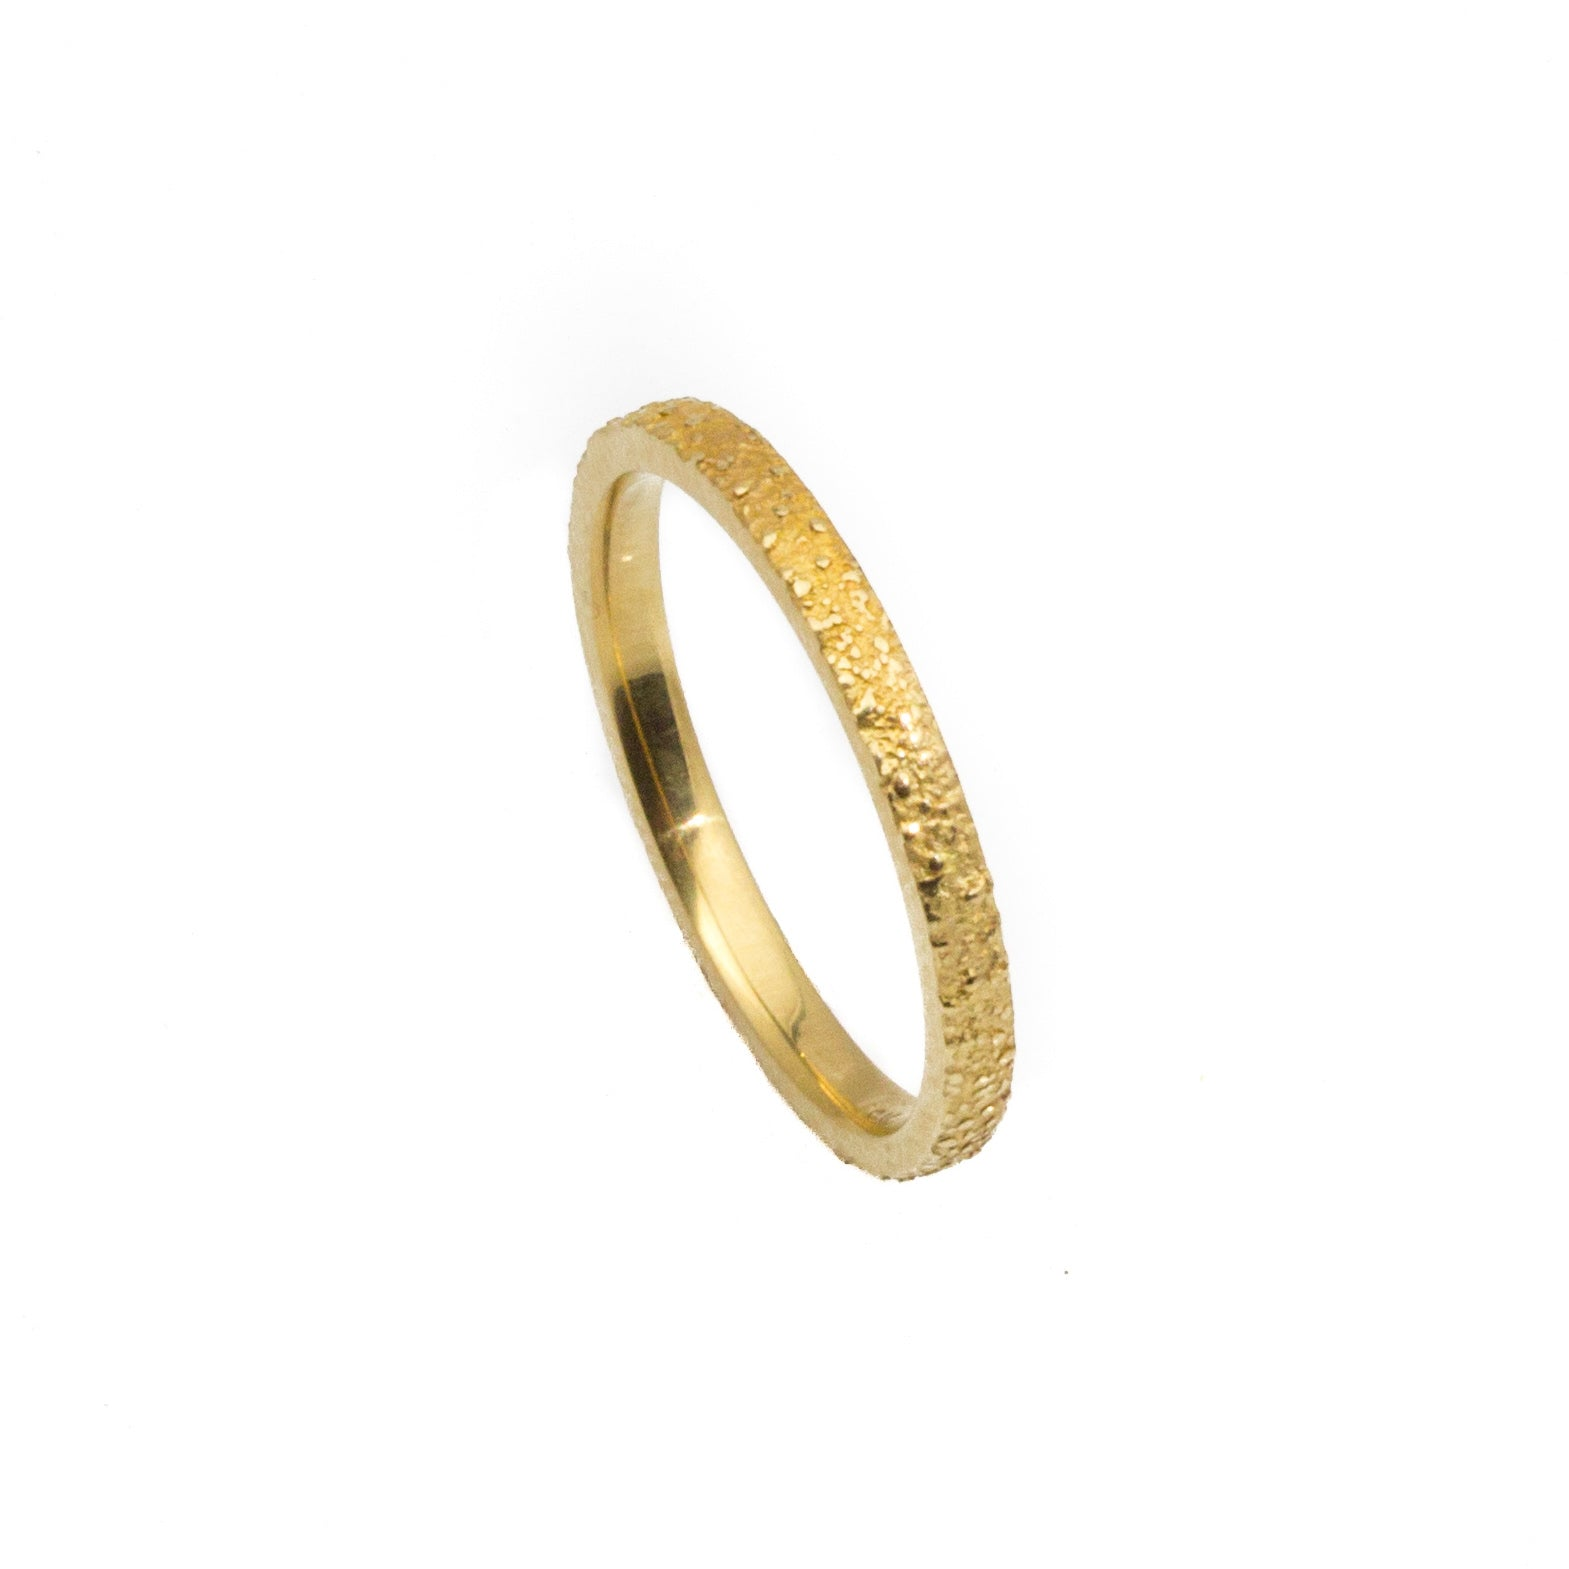 2mm Narrow Sand Band in 18K yellow gold